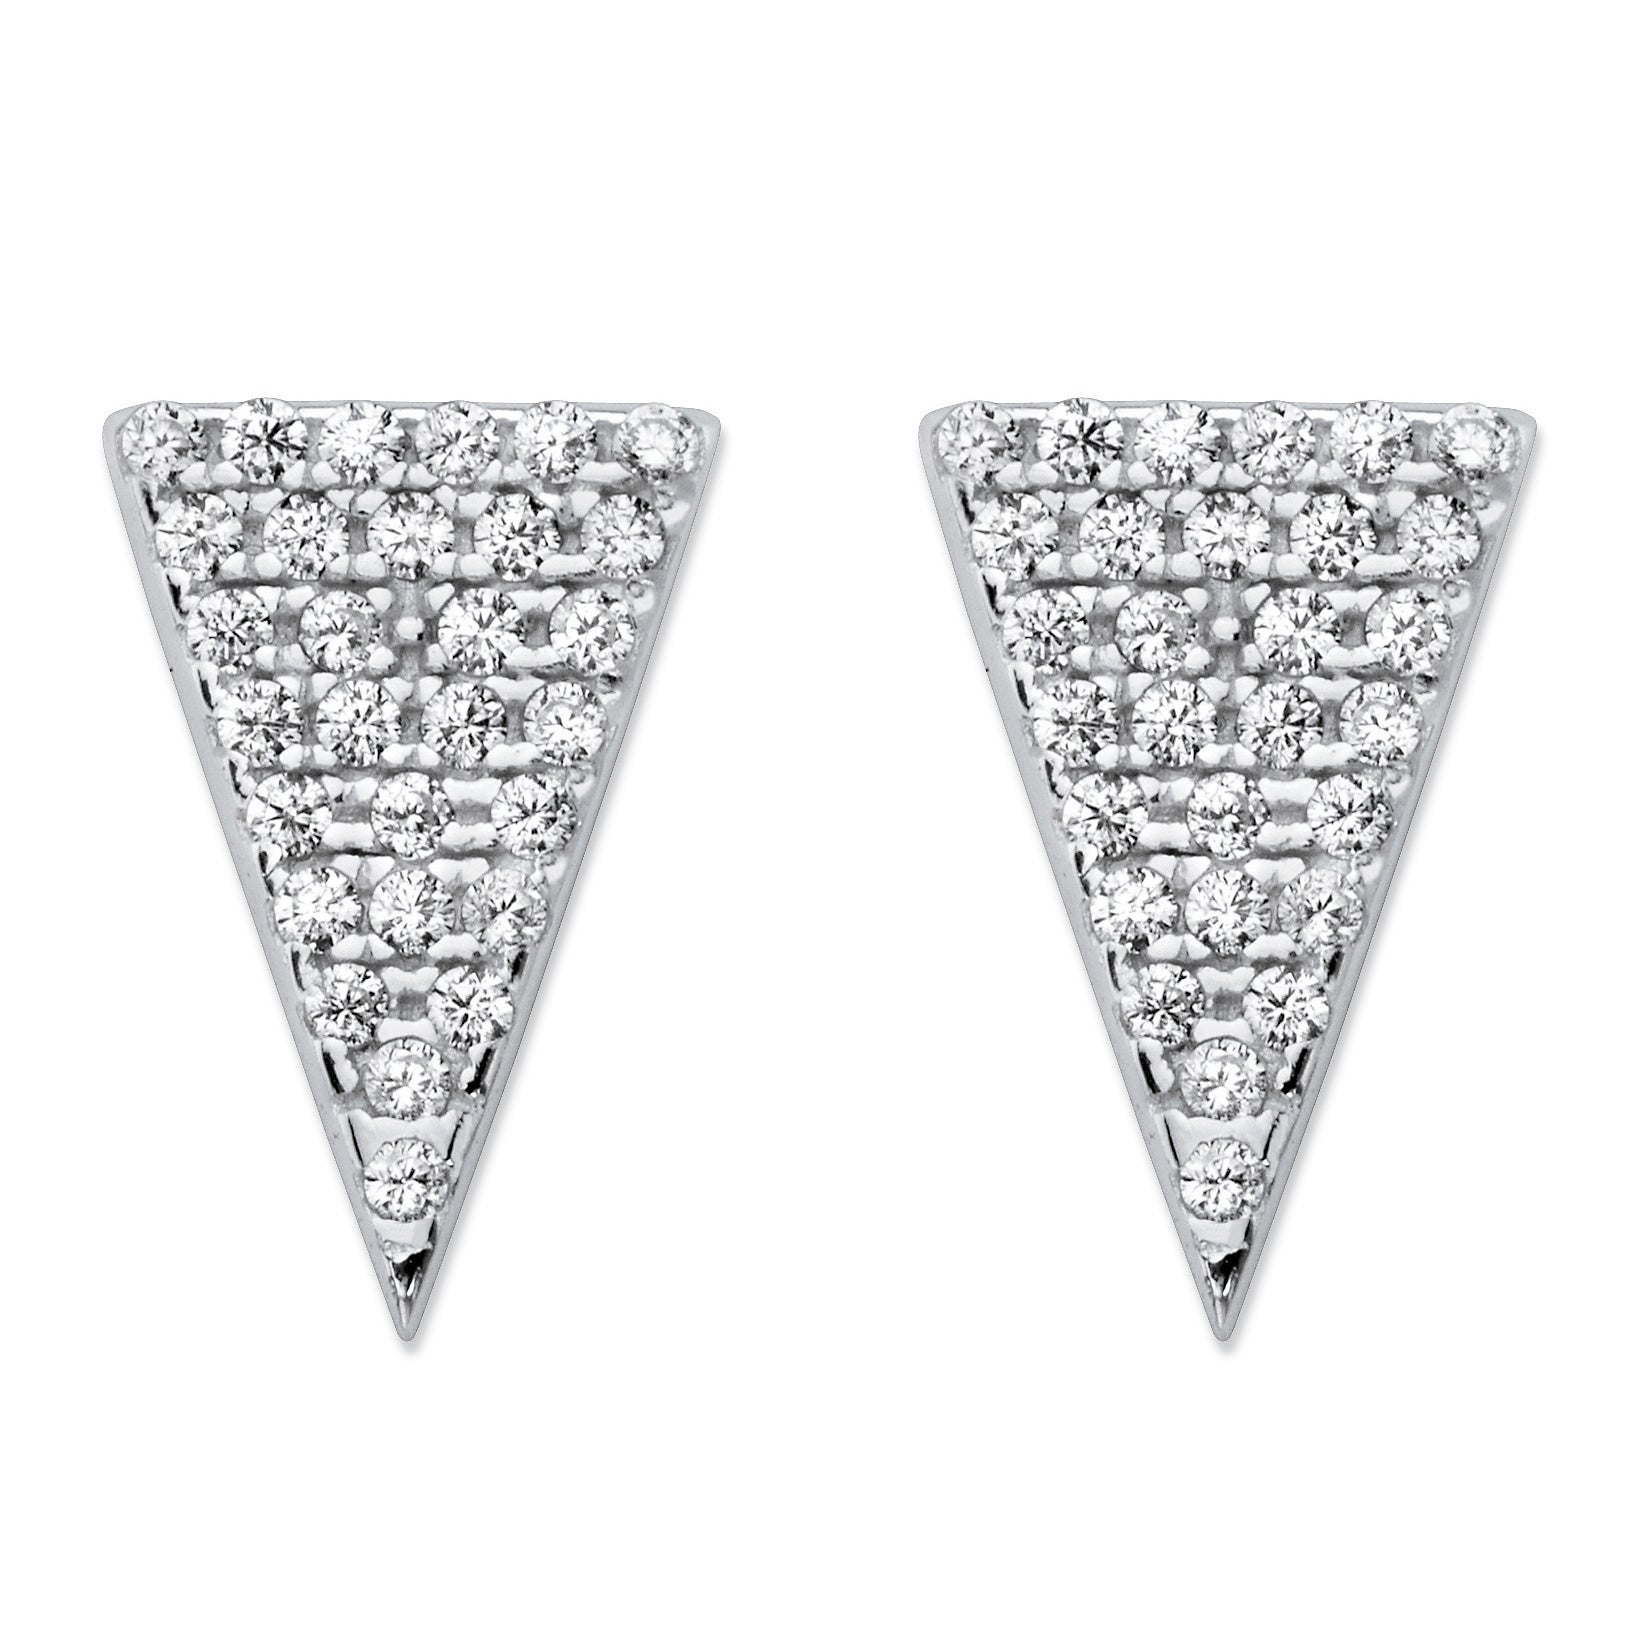 White Pave-Set Cubic Zirconia Triangle Stud Earrings in S...